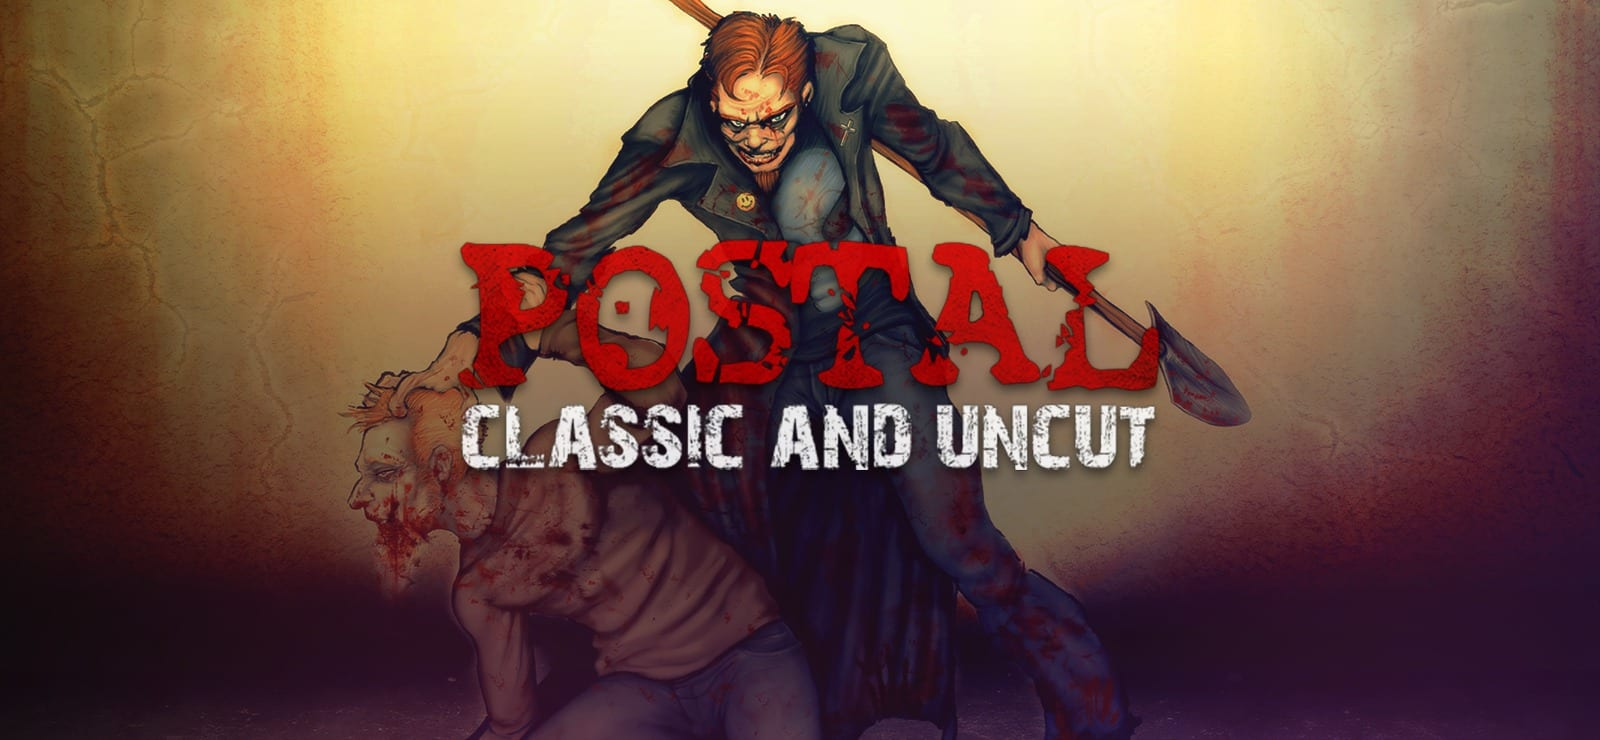 Postal: Classic And Uncut varies-with-device